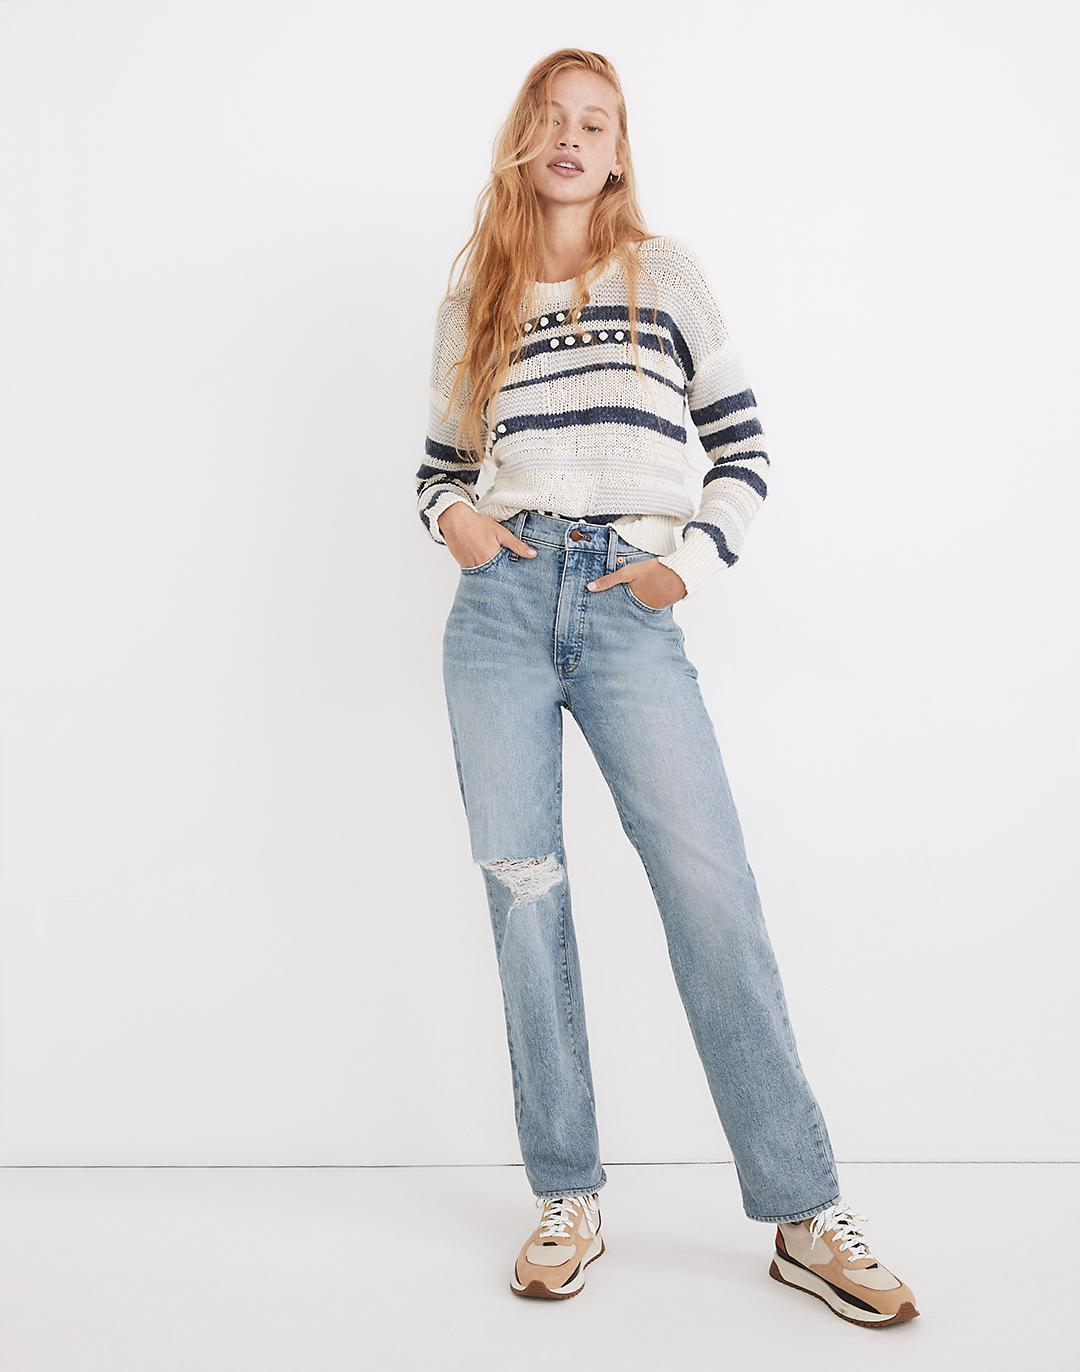 The Petite Perfect Vintage Straight Jean in Reinhart Wash